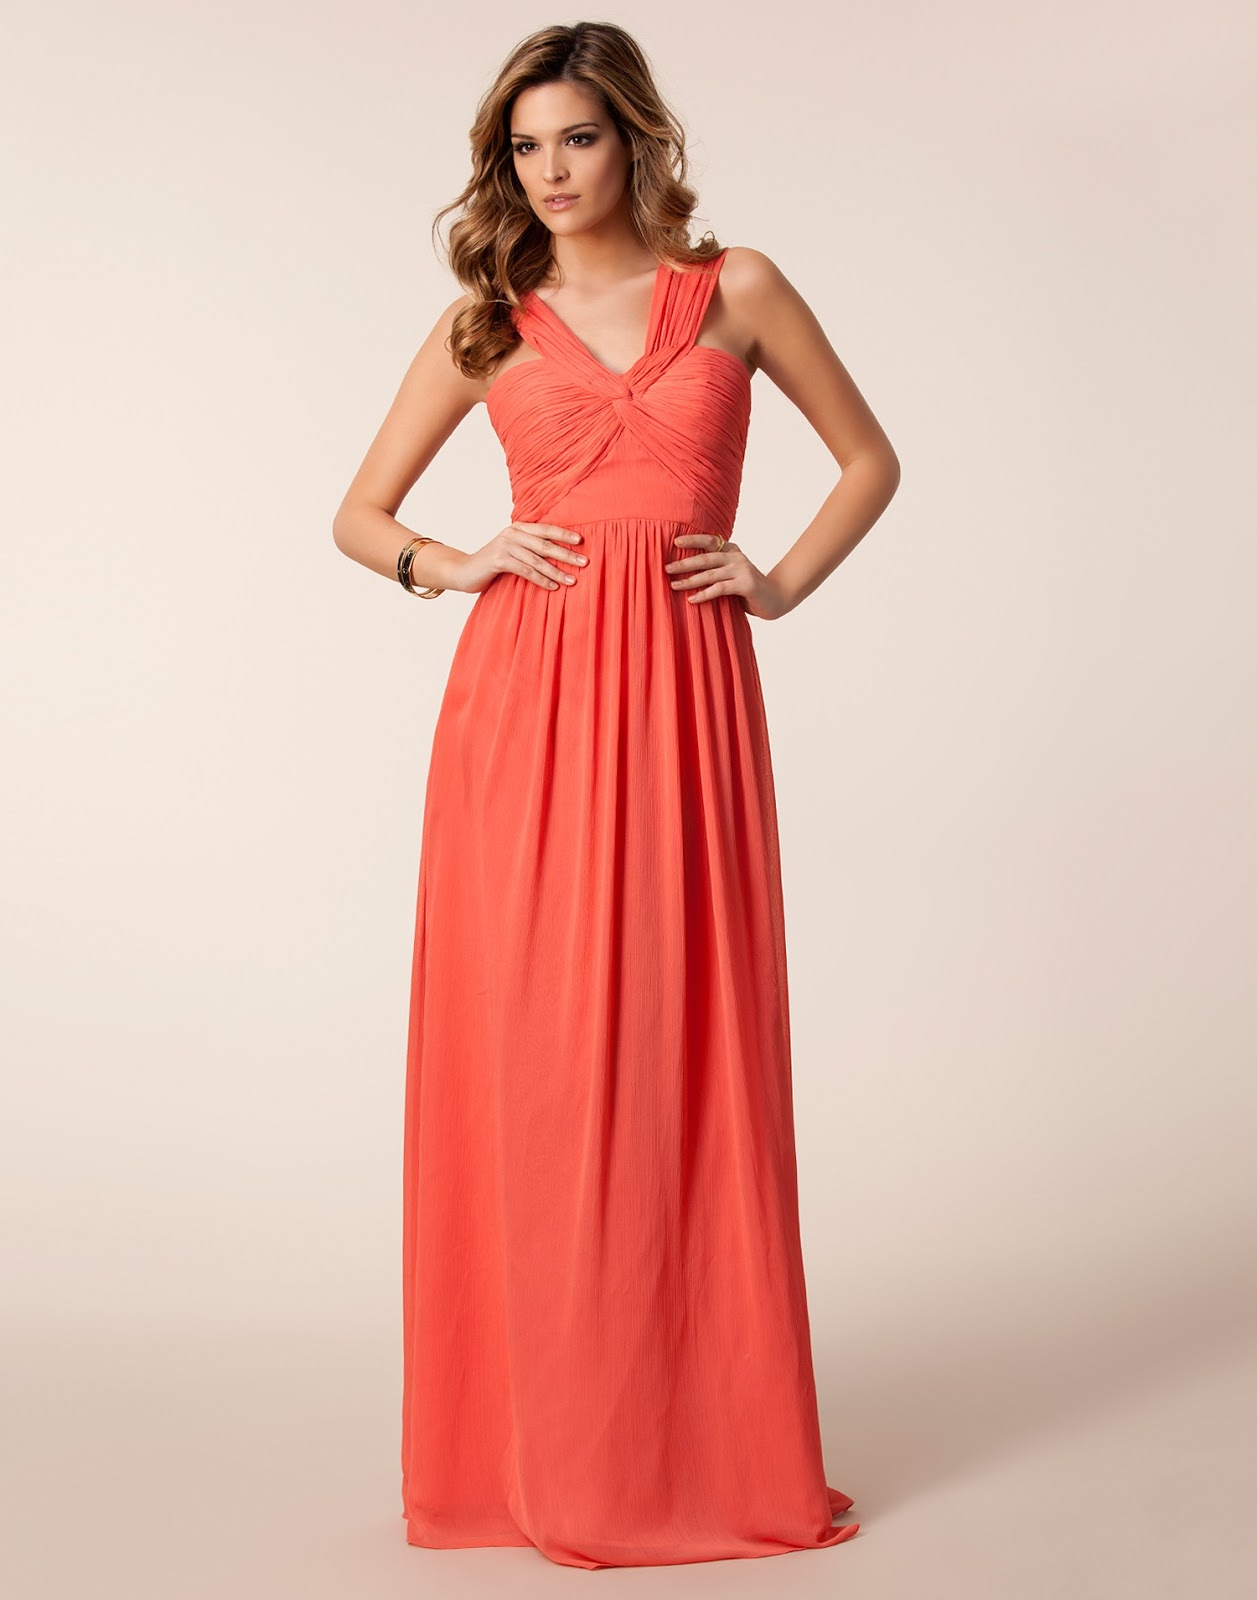 Red Evening, Prom or Homecoming Dresses